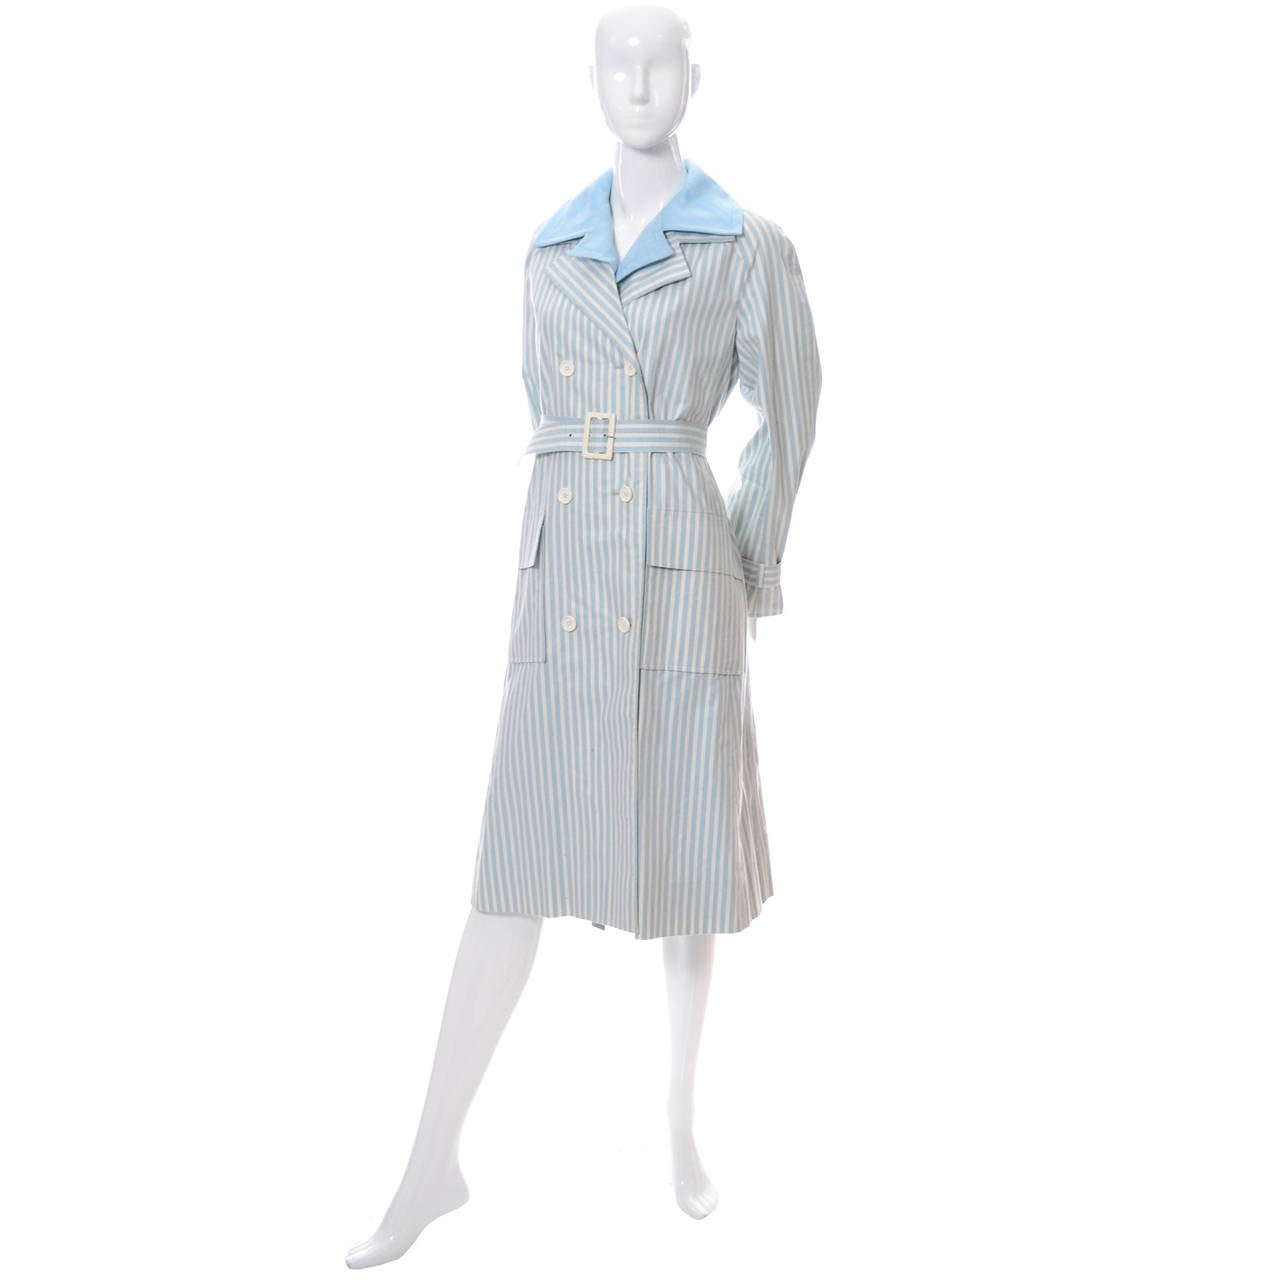 Givenchy Nouvelle Boutique 1970s Blue Vintage Dress and Striped Coat Outfit 3